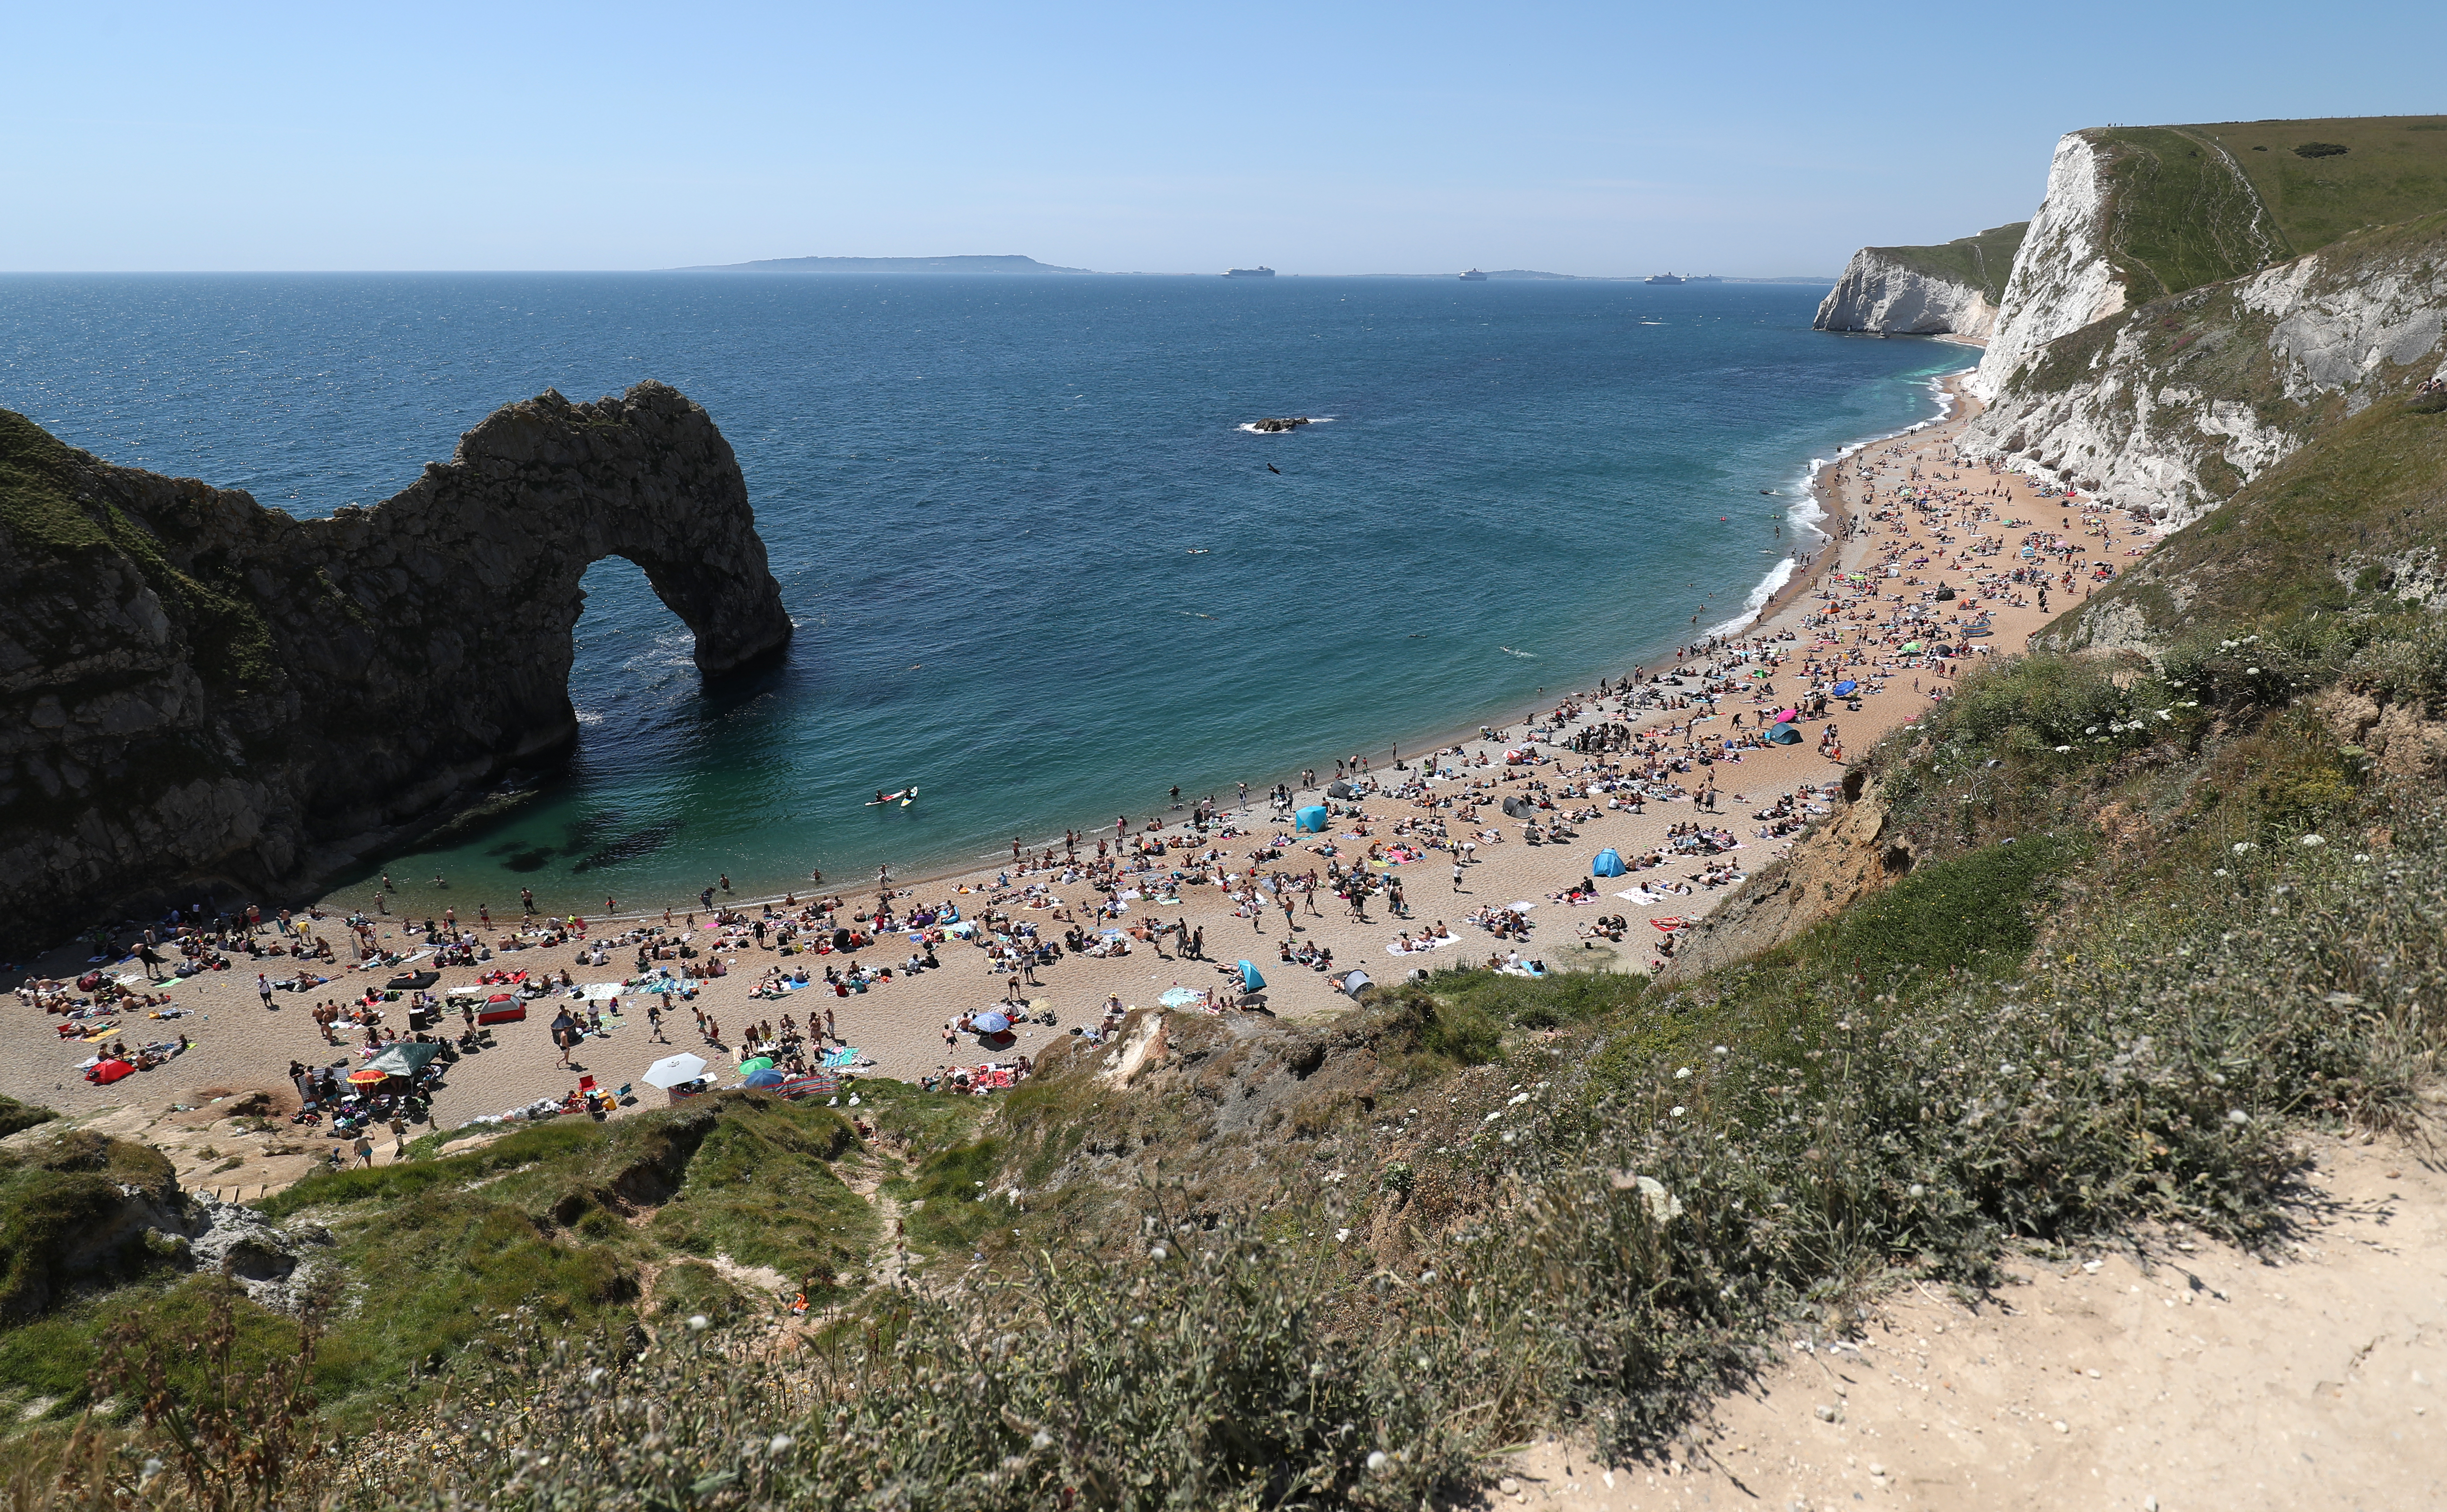 People fill the beach at Durdle Door, near Lulworth, despite Dorset Council announcing that the beach was closed to the public after three people were seriously injured jumping off cliffs into the sea.